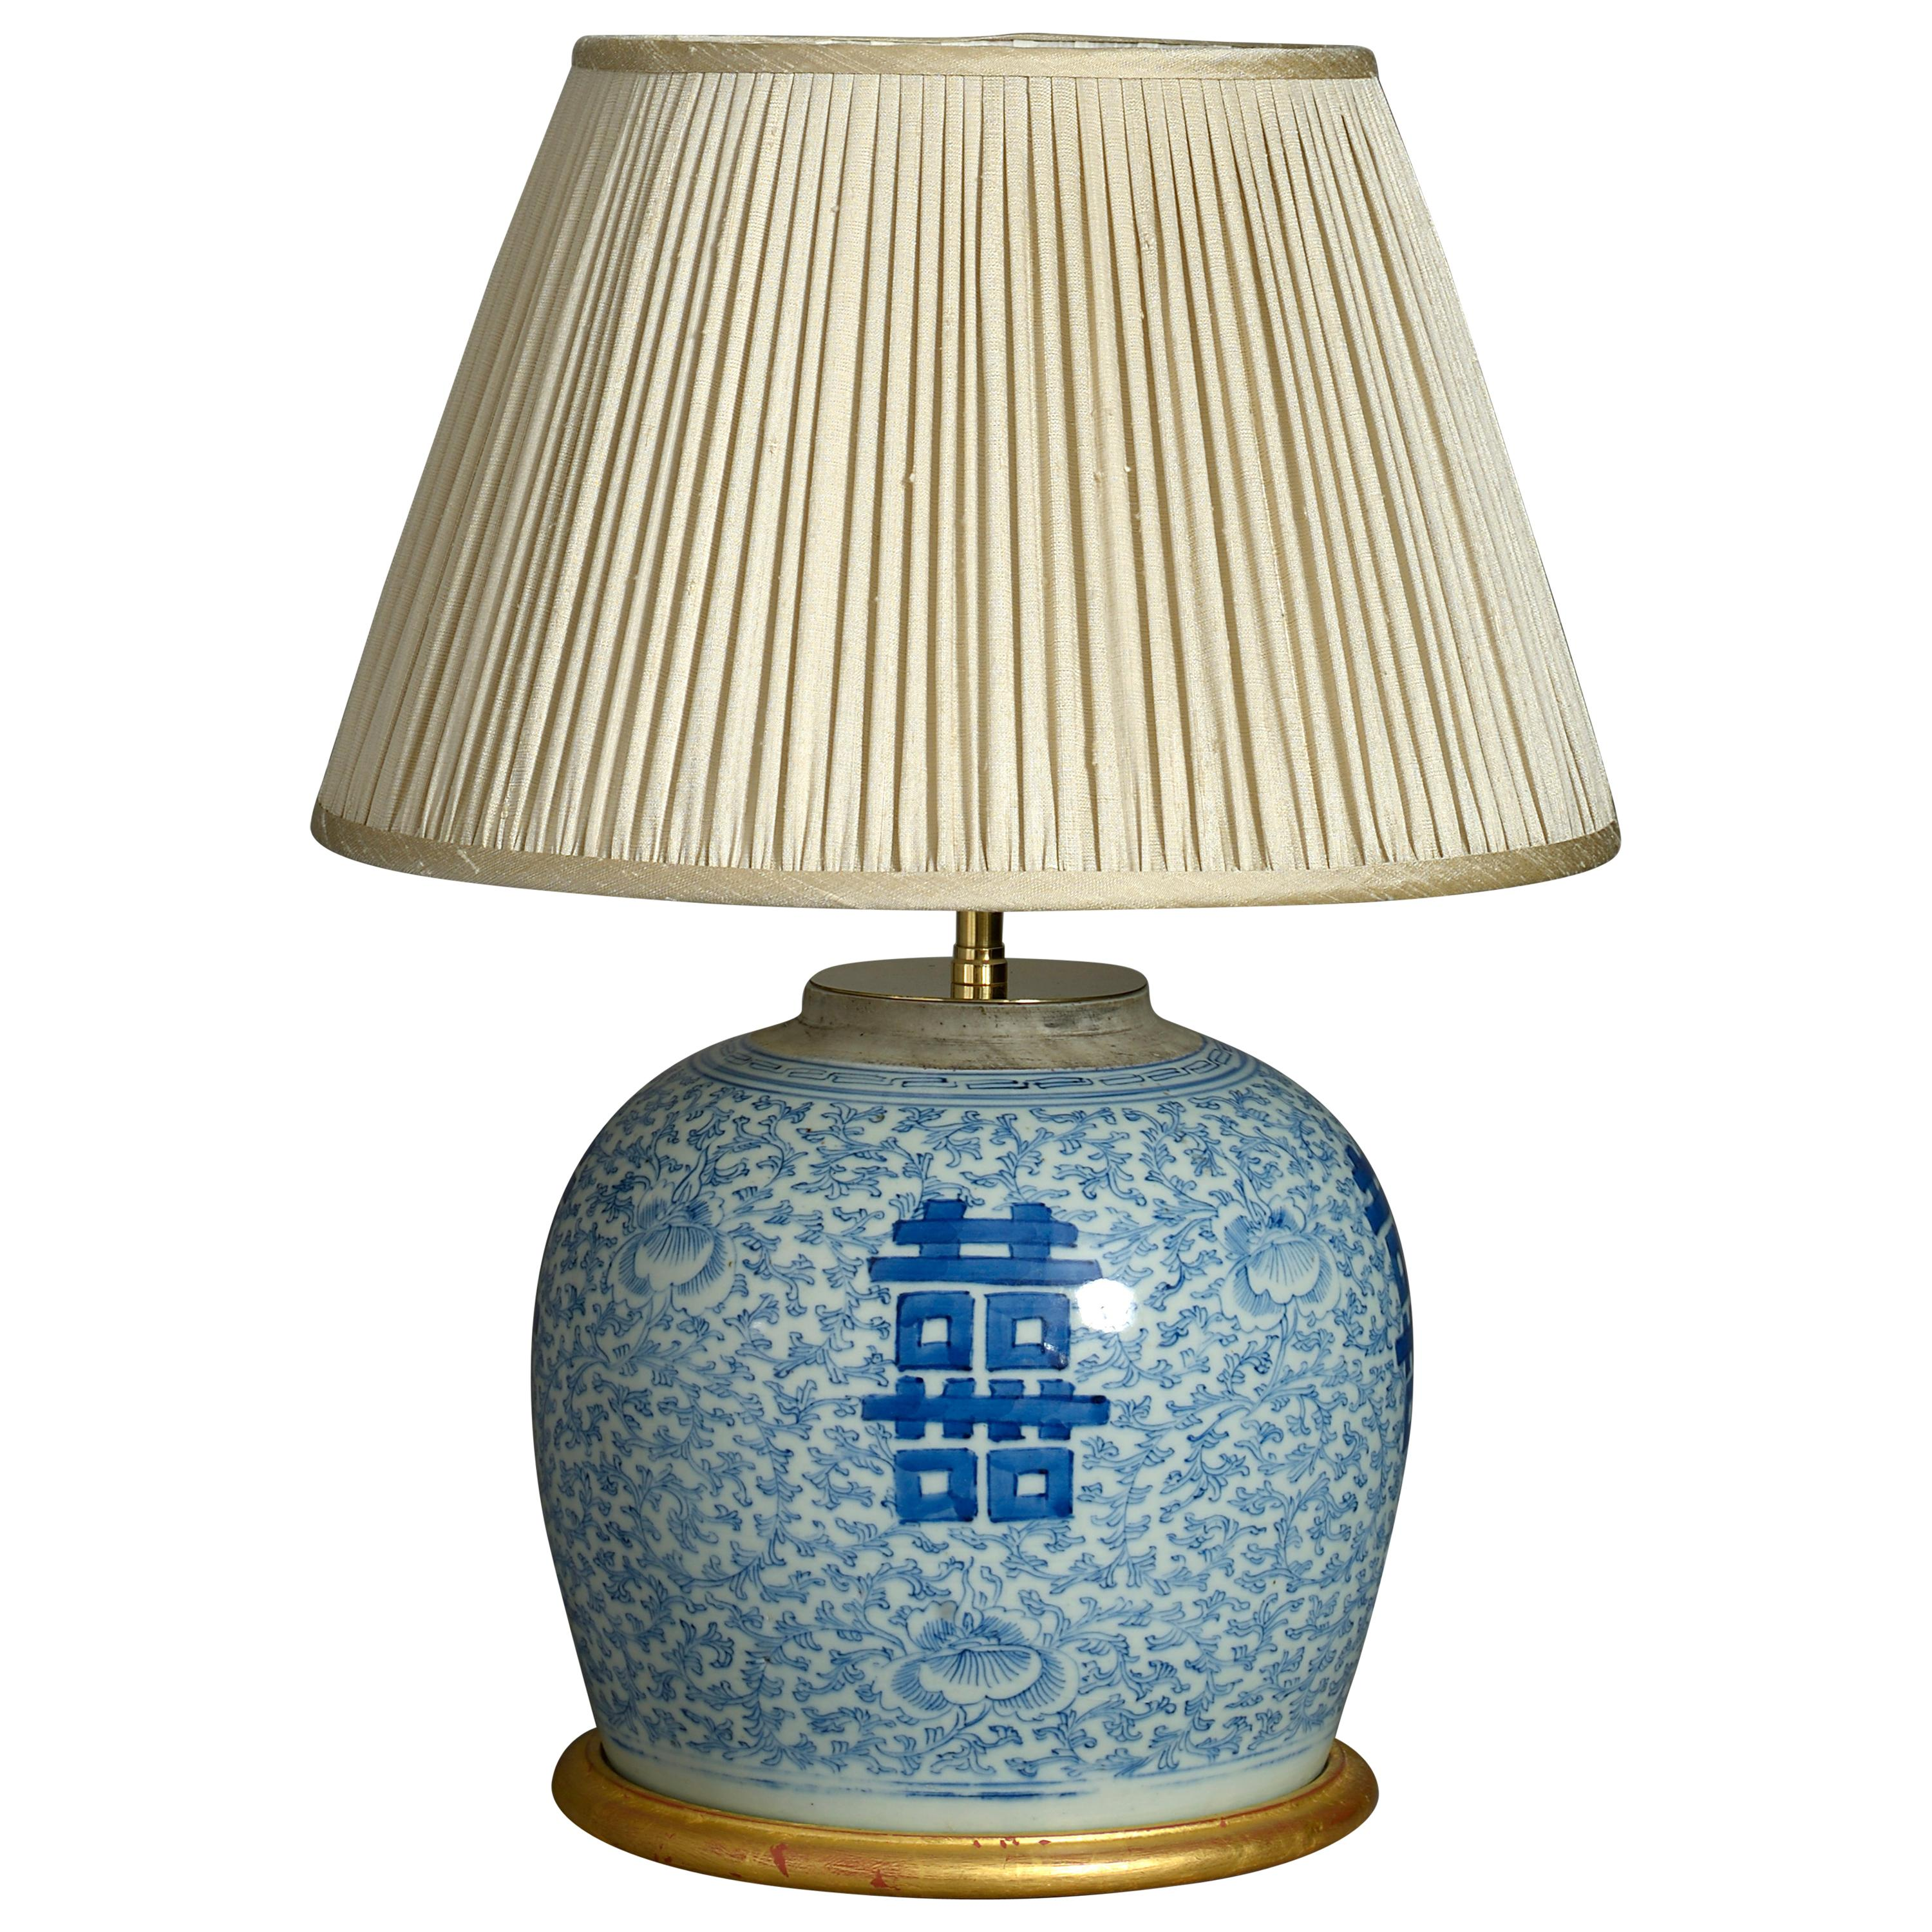 19th Century Blue and White porcelain Jar Lamp